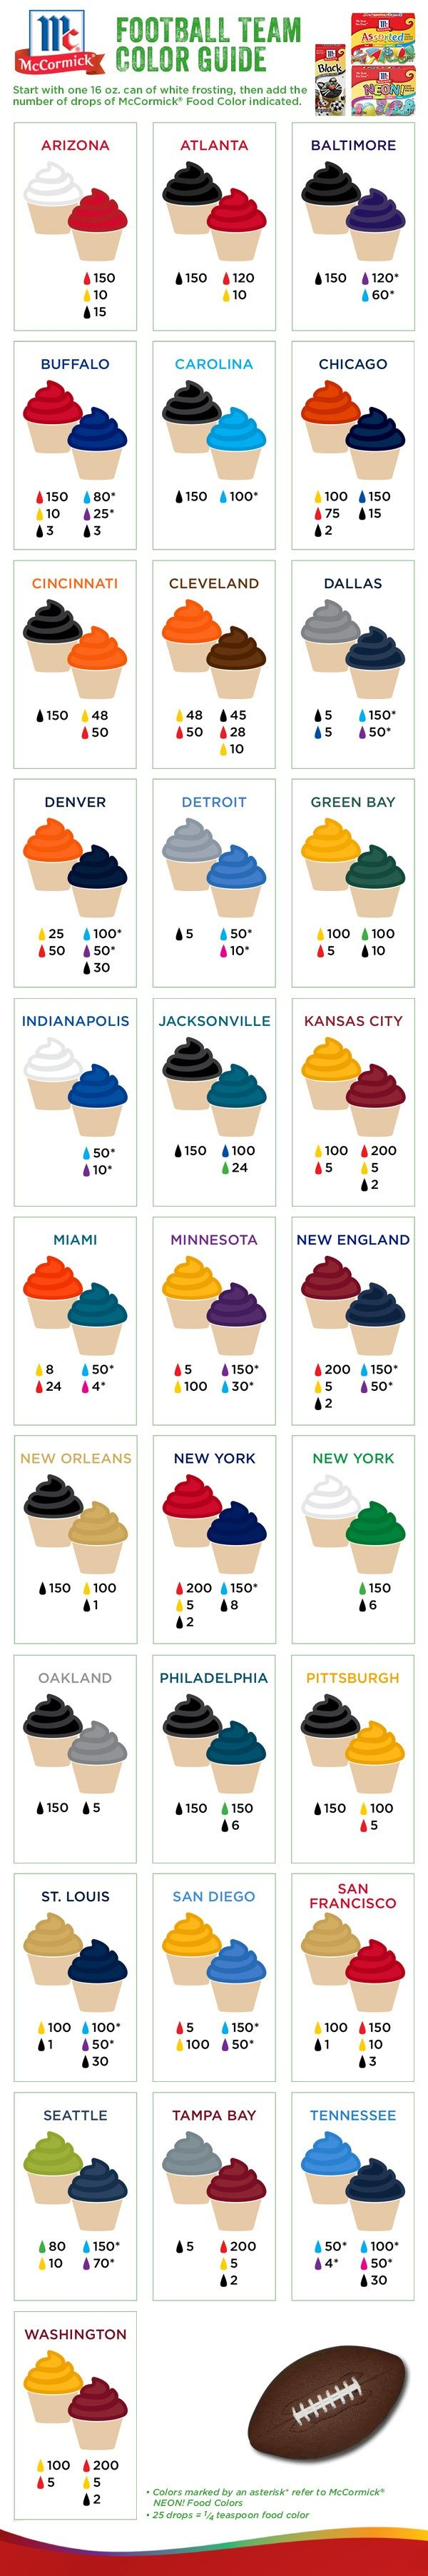 a food color guide for turning canned white frosting into the perfect team-colored topper for game day treats #superbowl